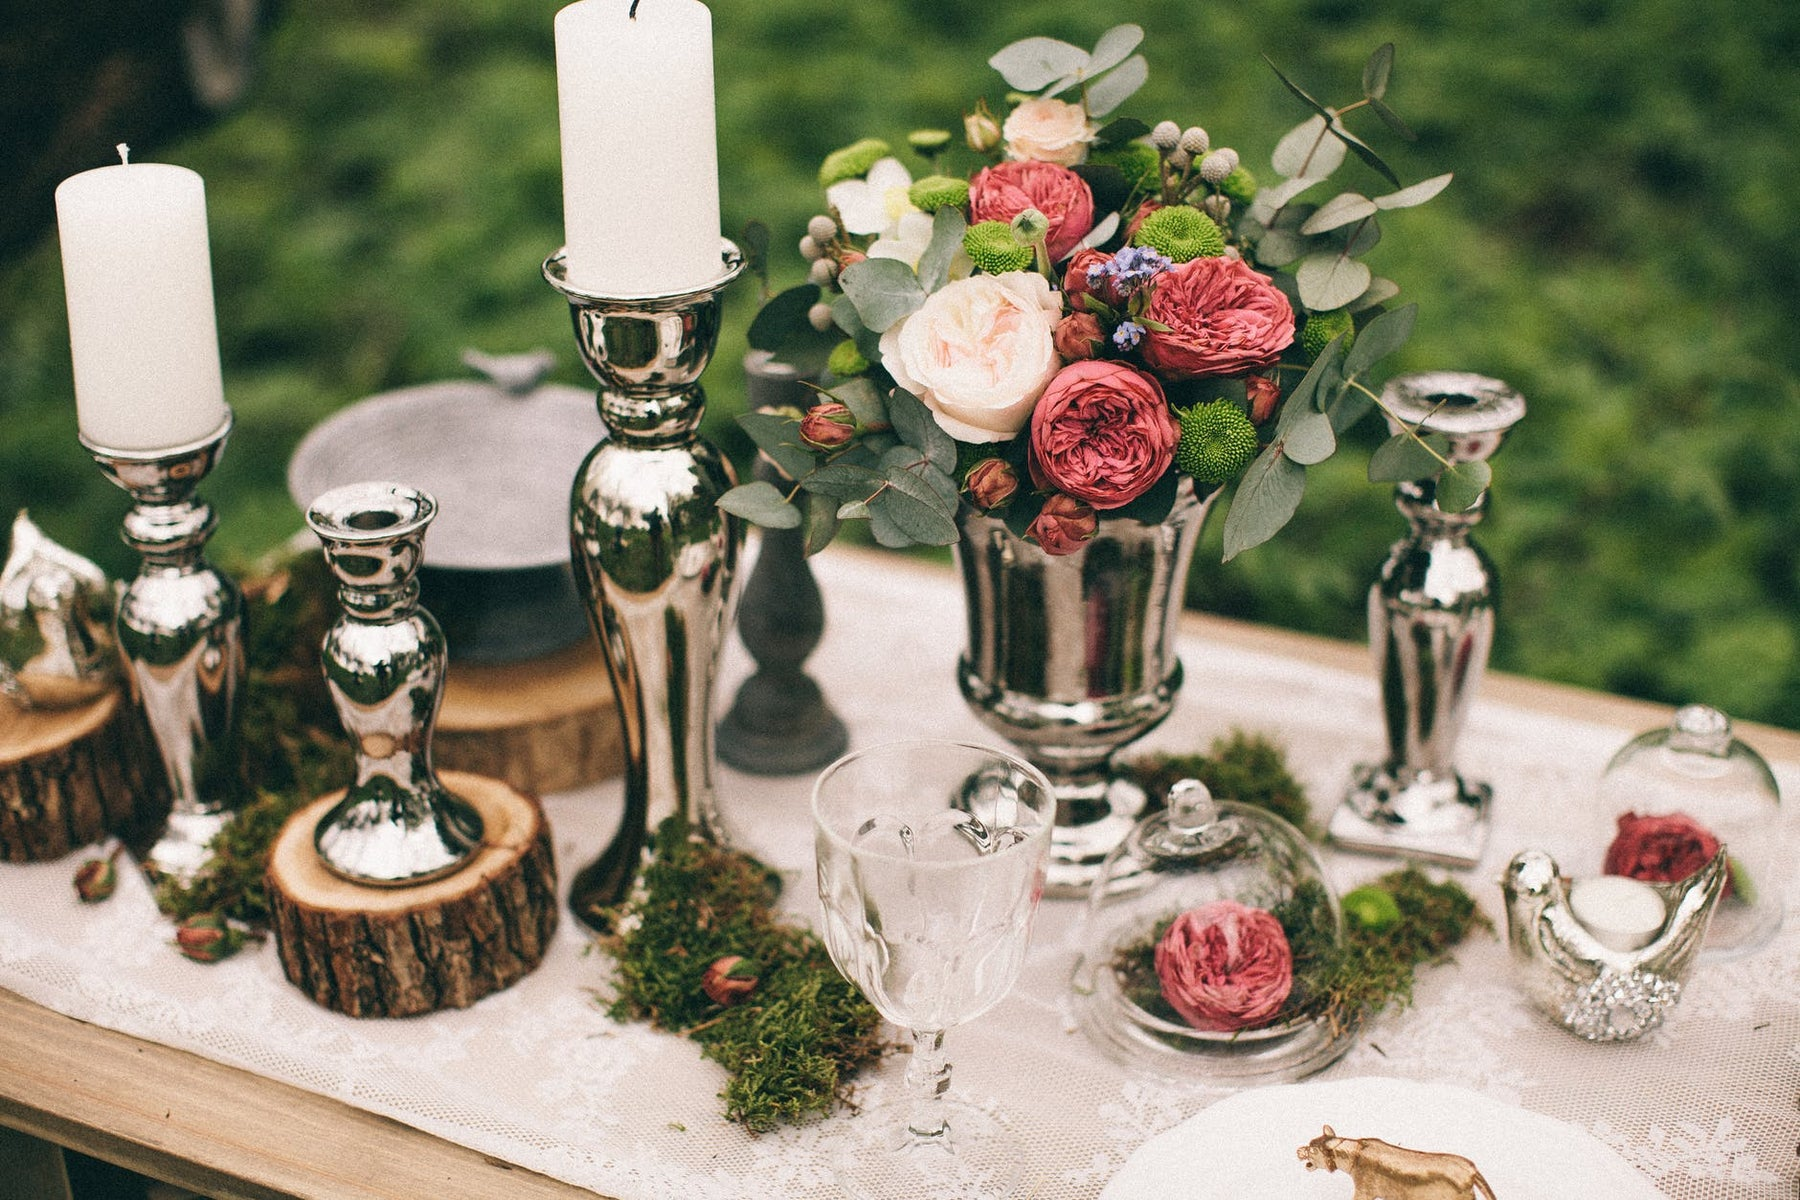 5 alternativas de decoración con Velas para Boda: